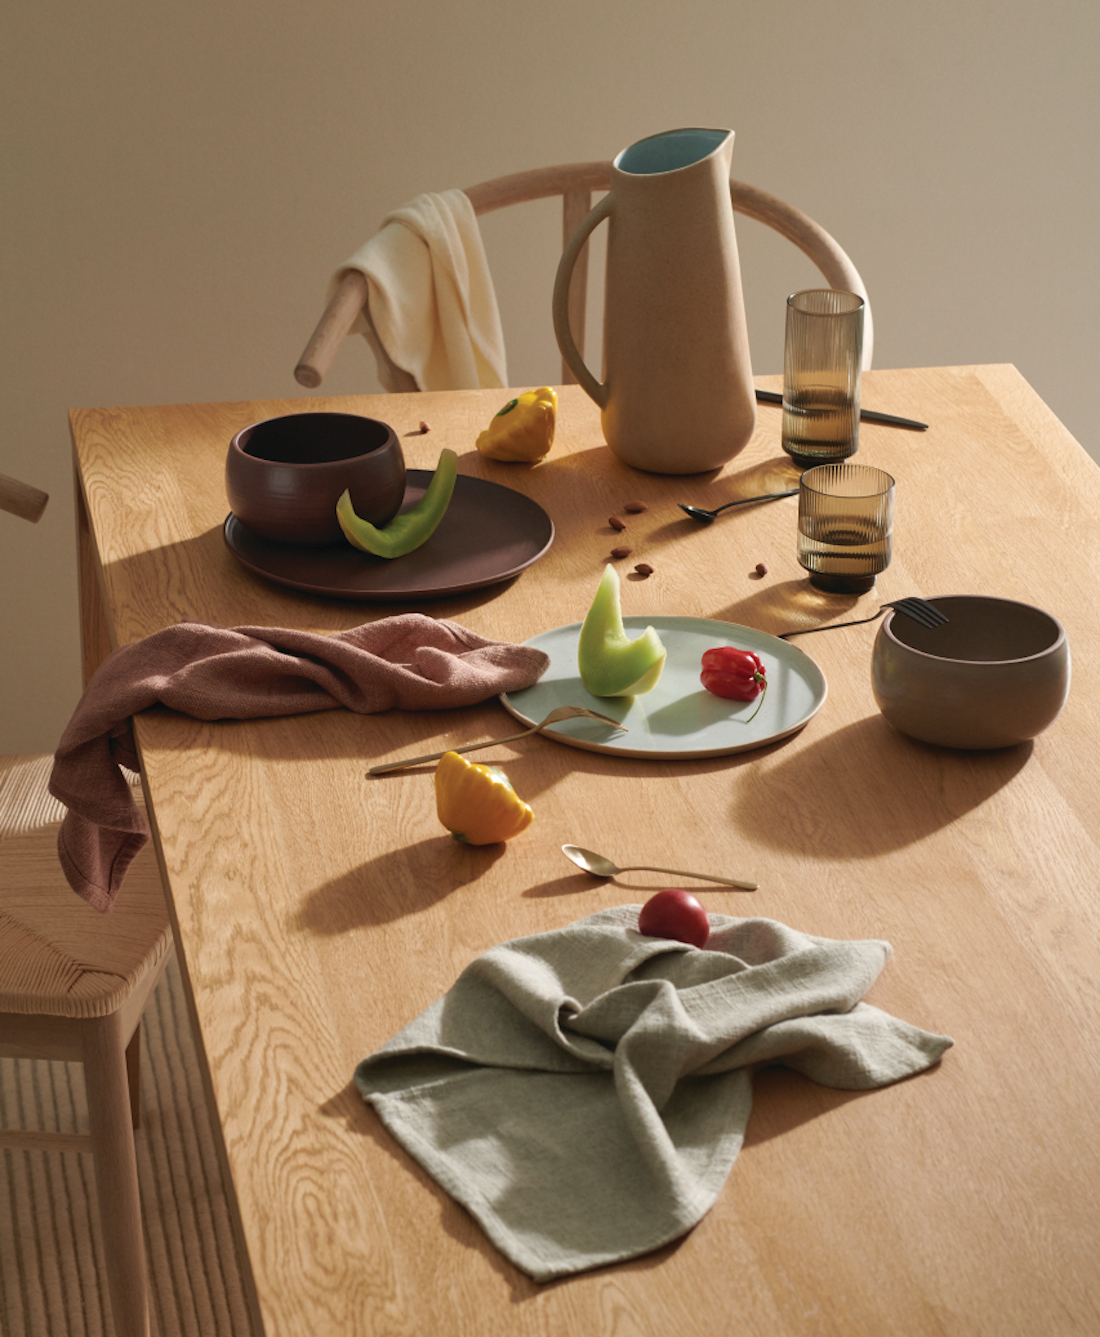 An assortment of beautiful plates and cups rest on a wooden table.